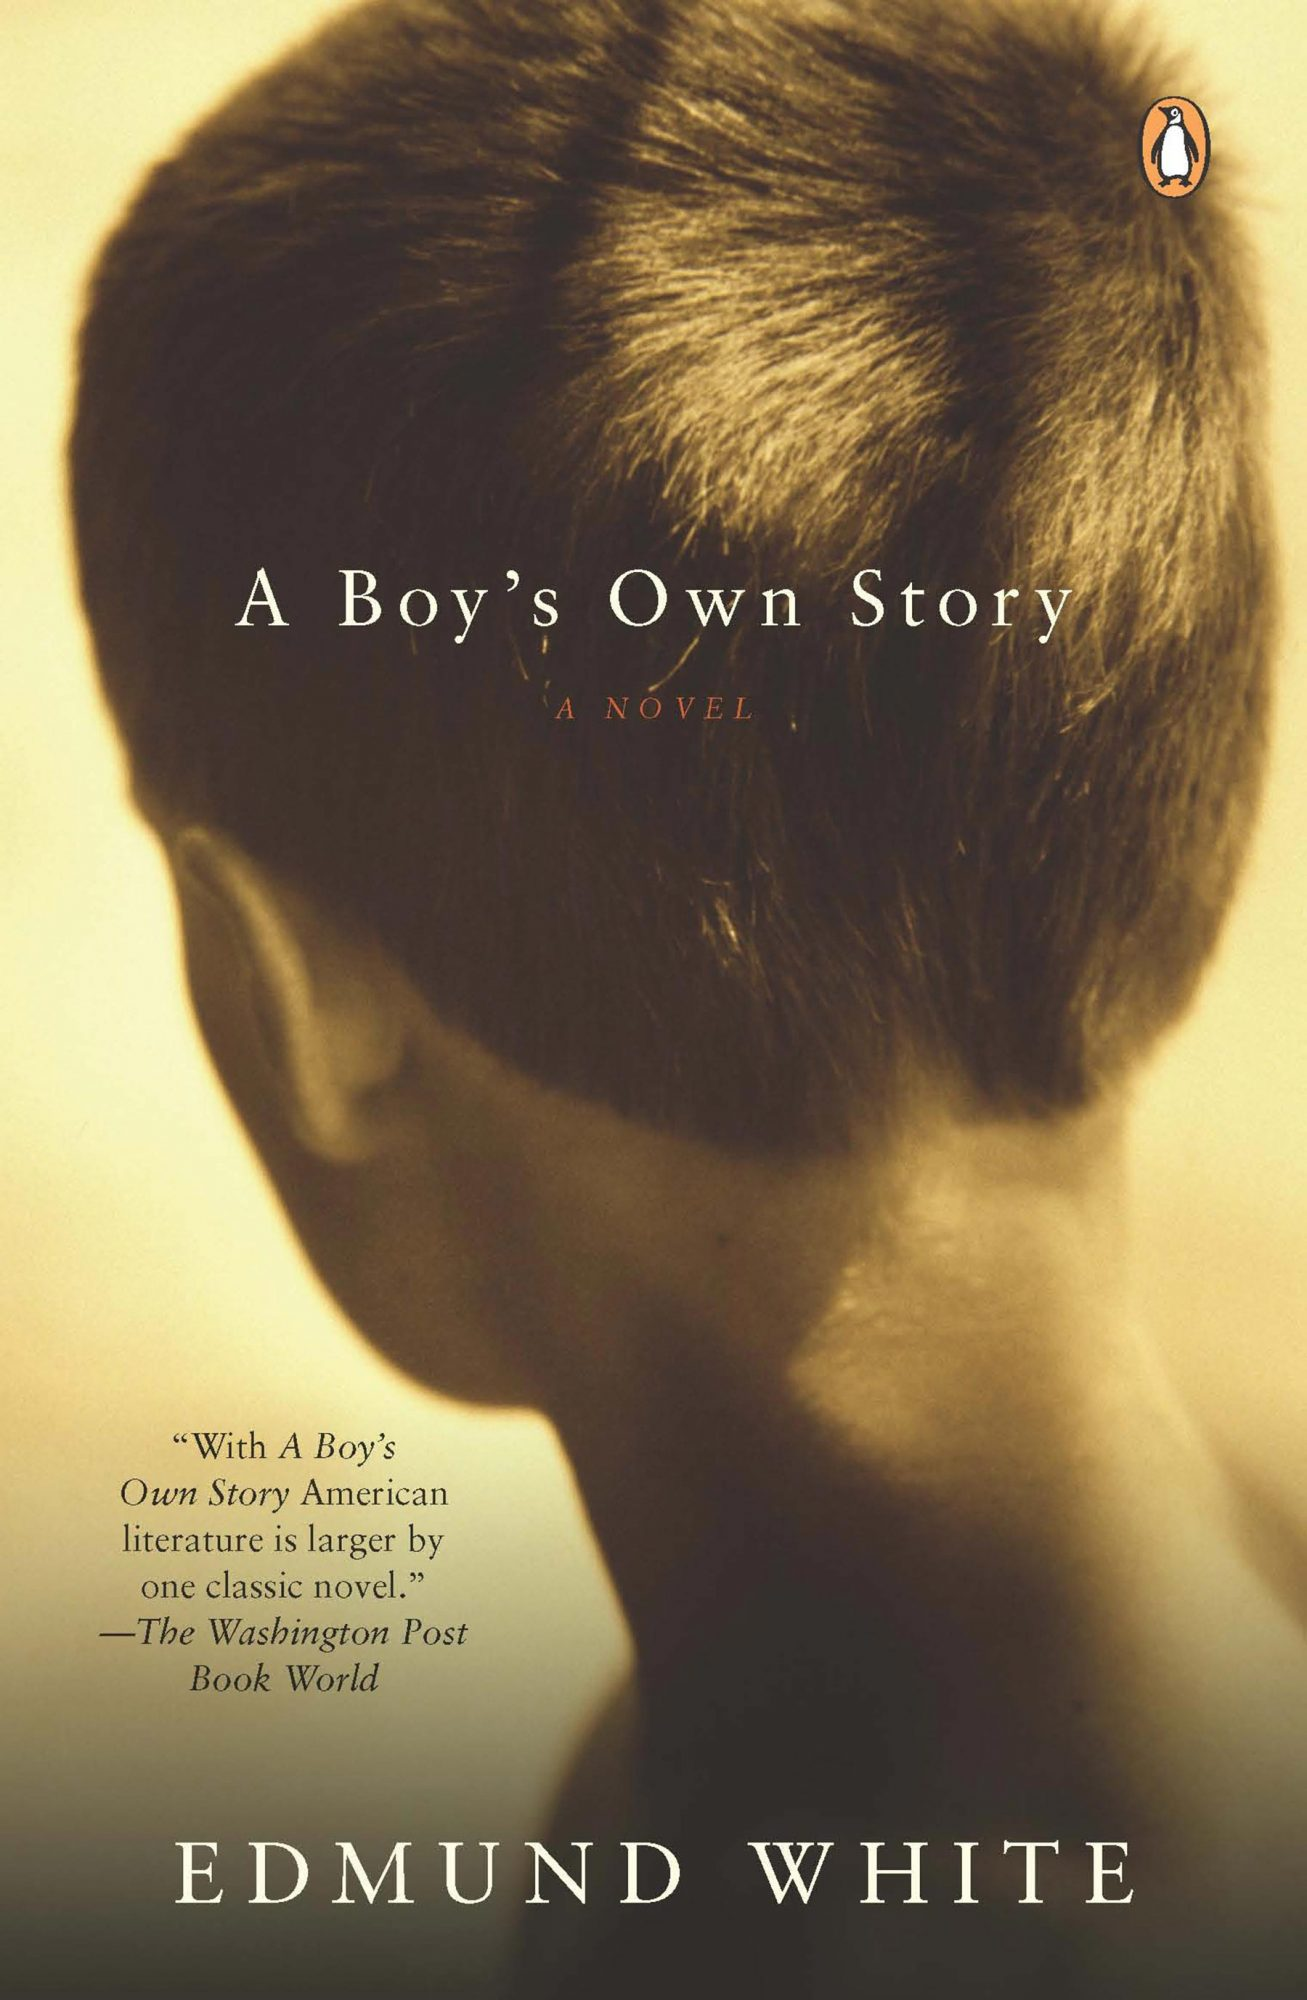 A Boy's Own Story - paperback (2/24/09)by Edmund White